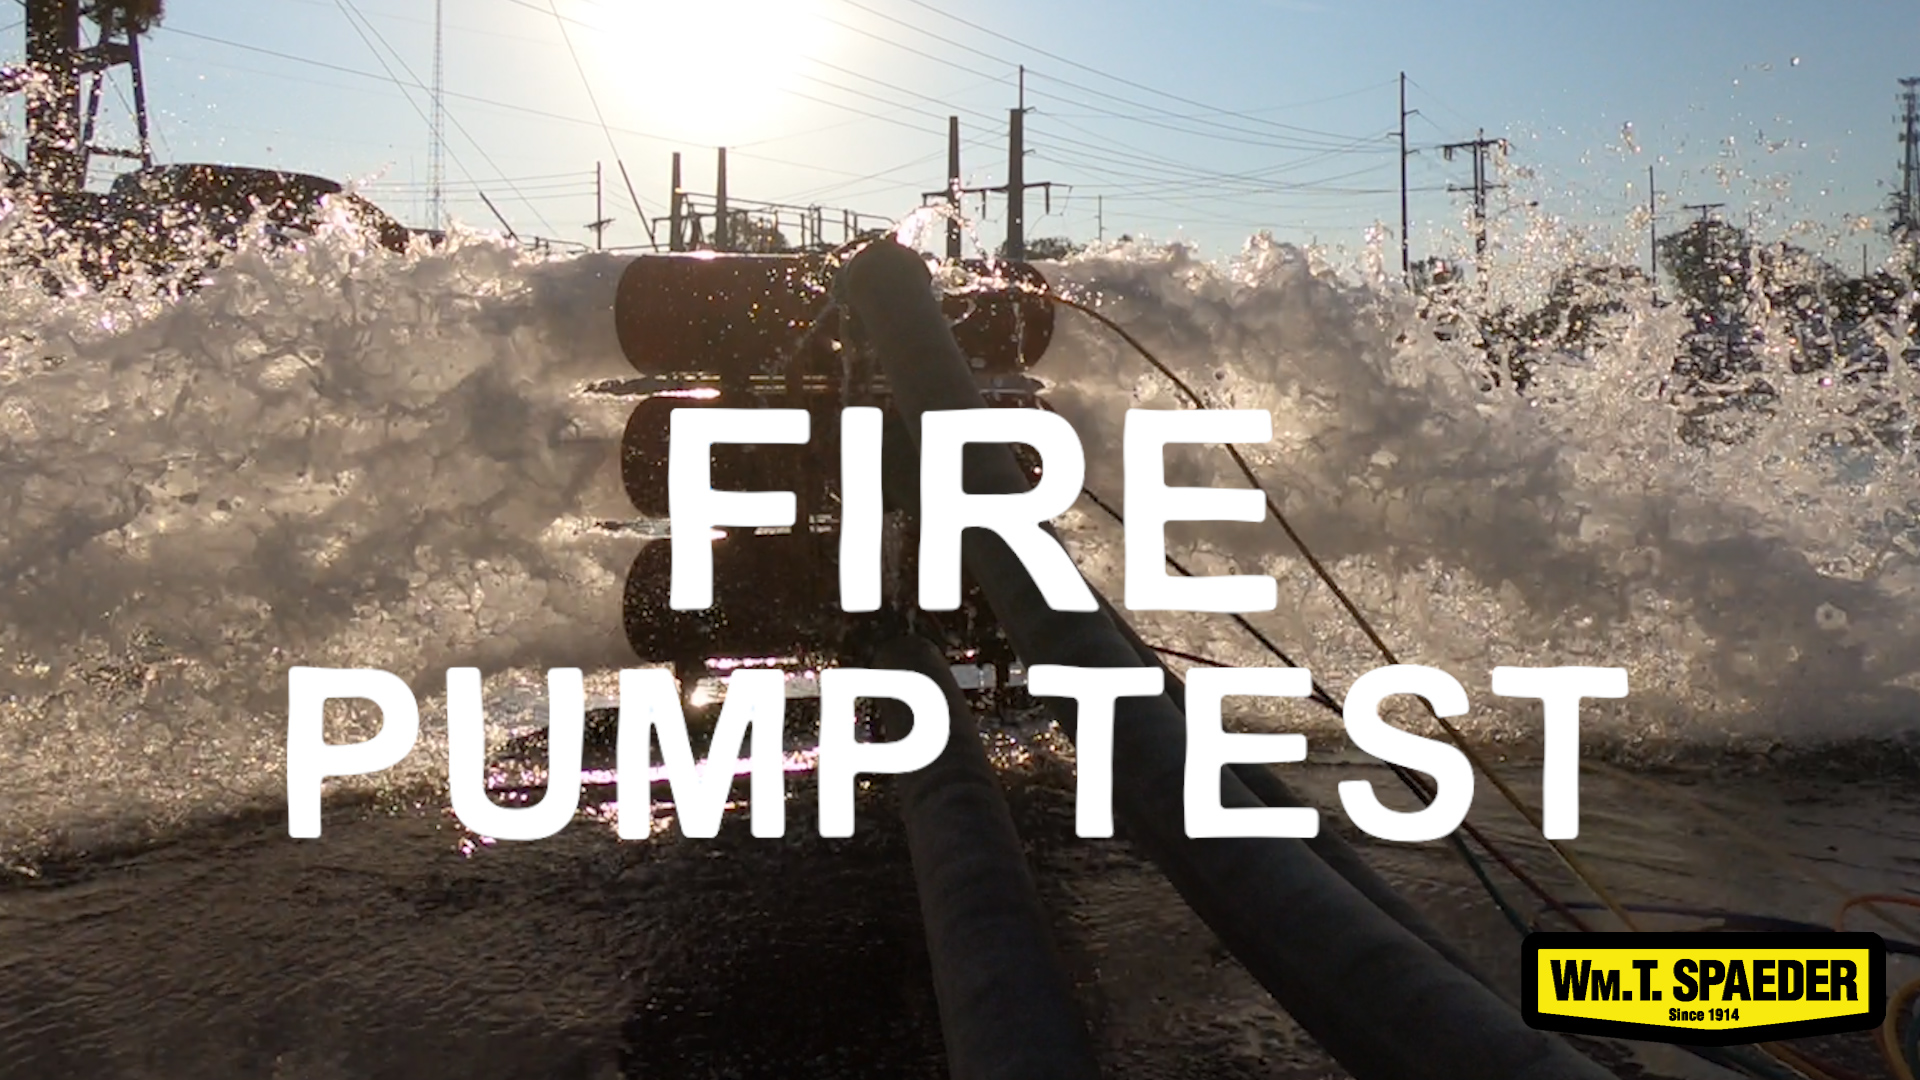 Why Fire Pump Testing Is Important Image by WM.T. Spaeder